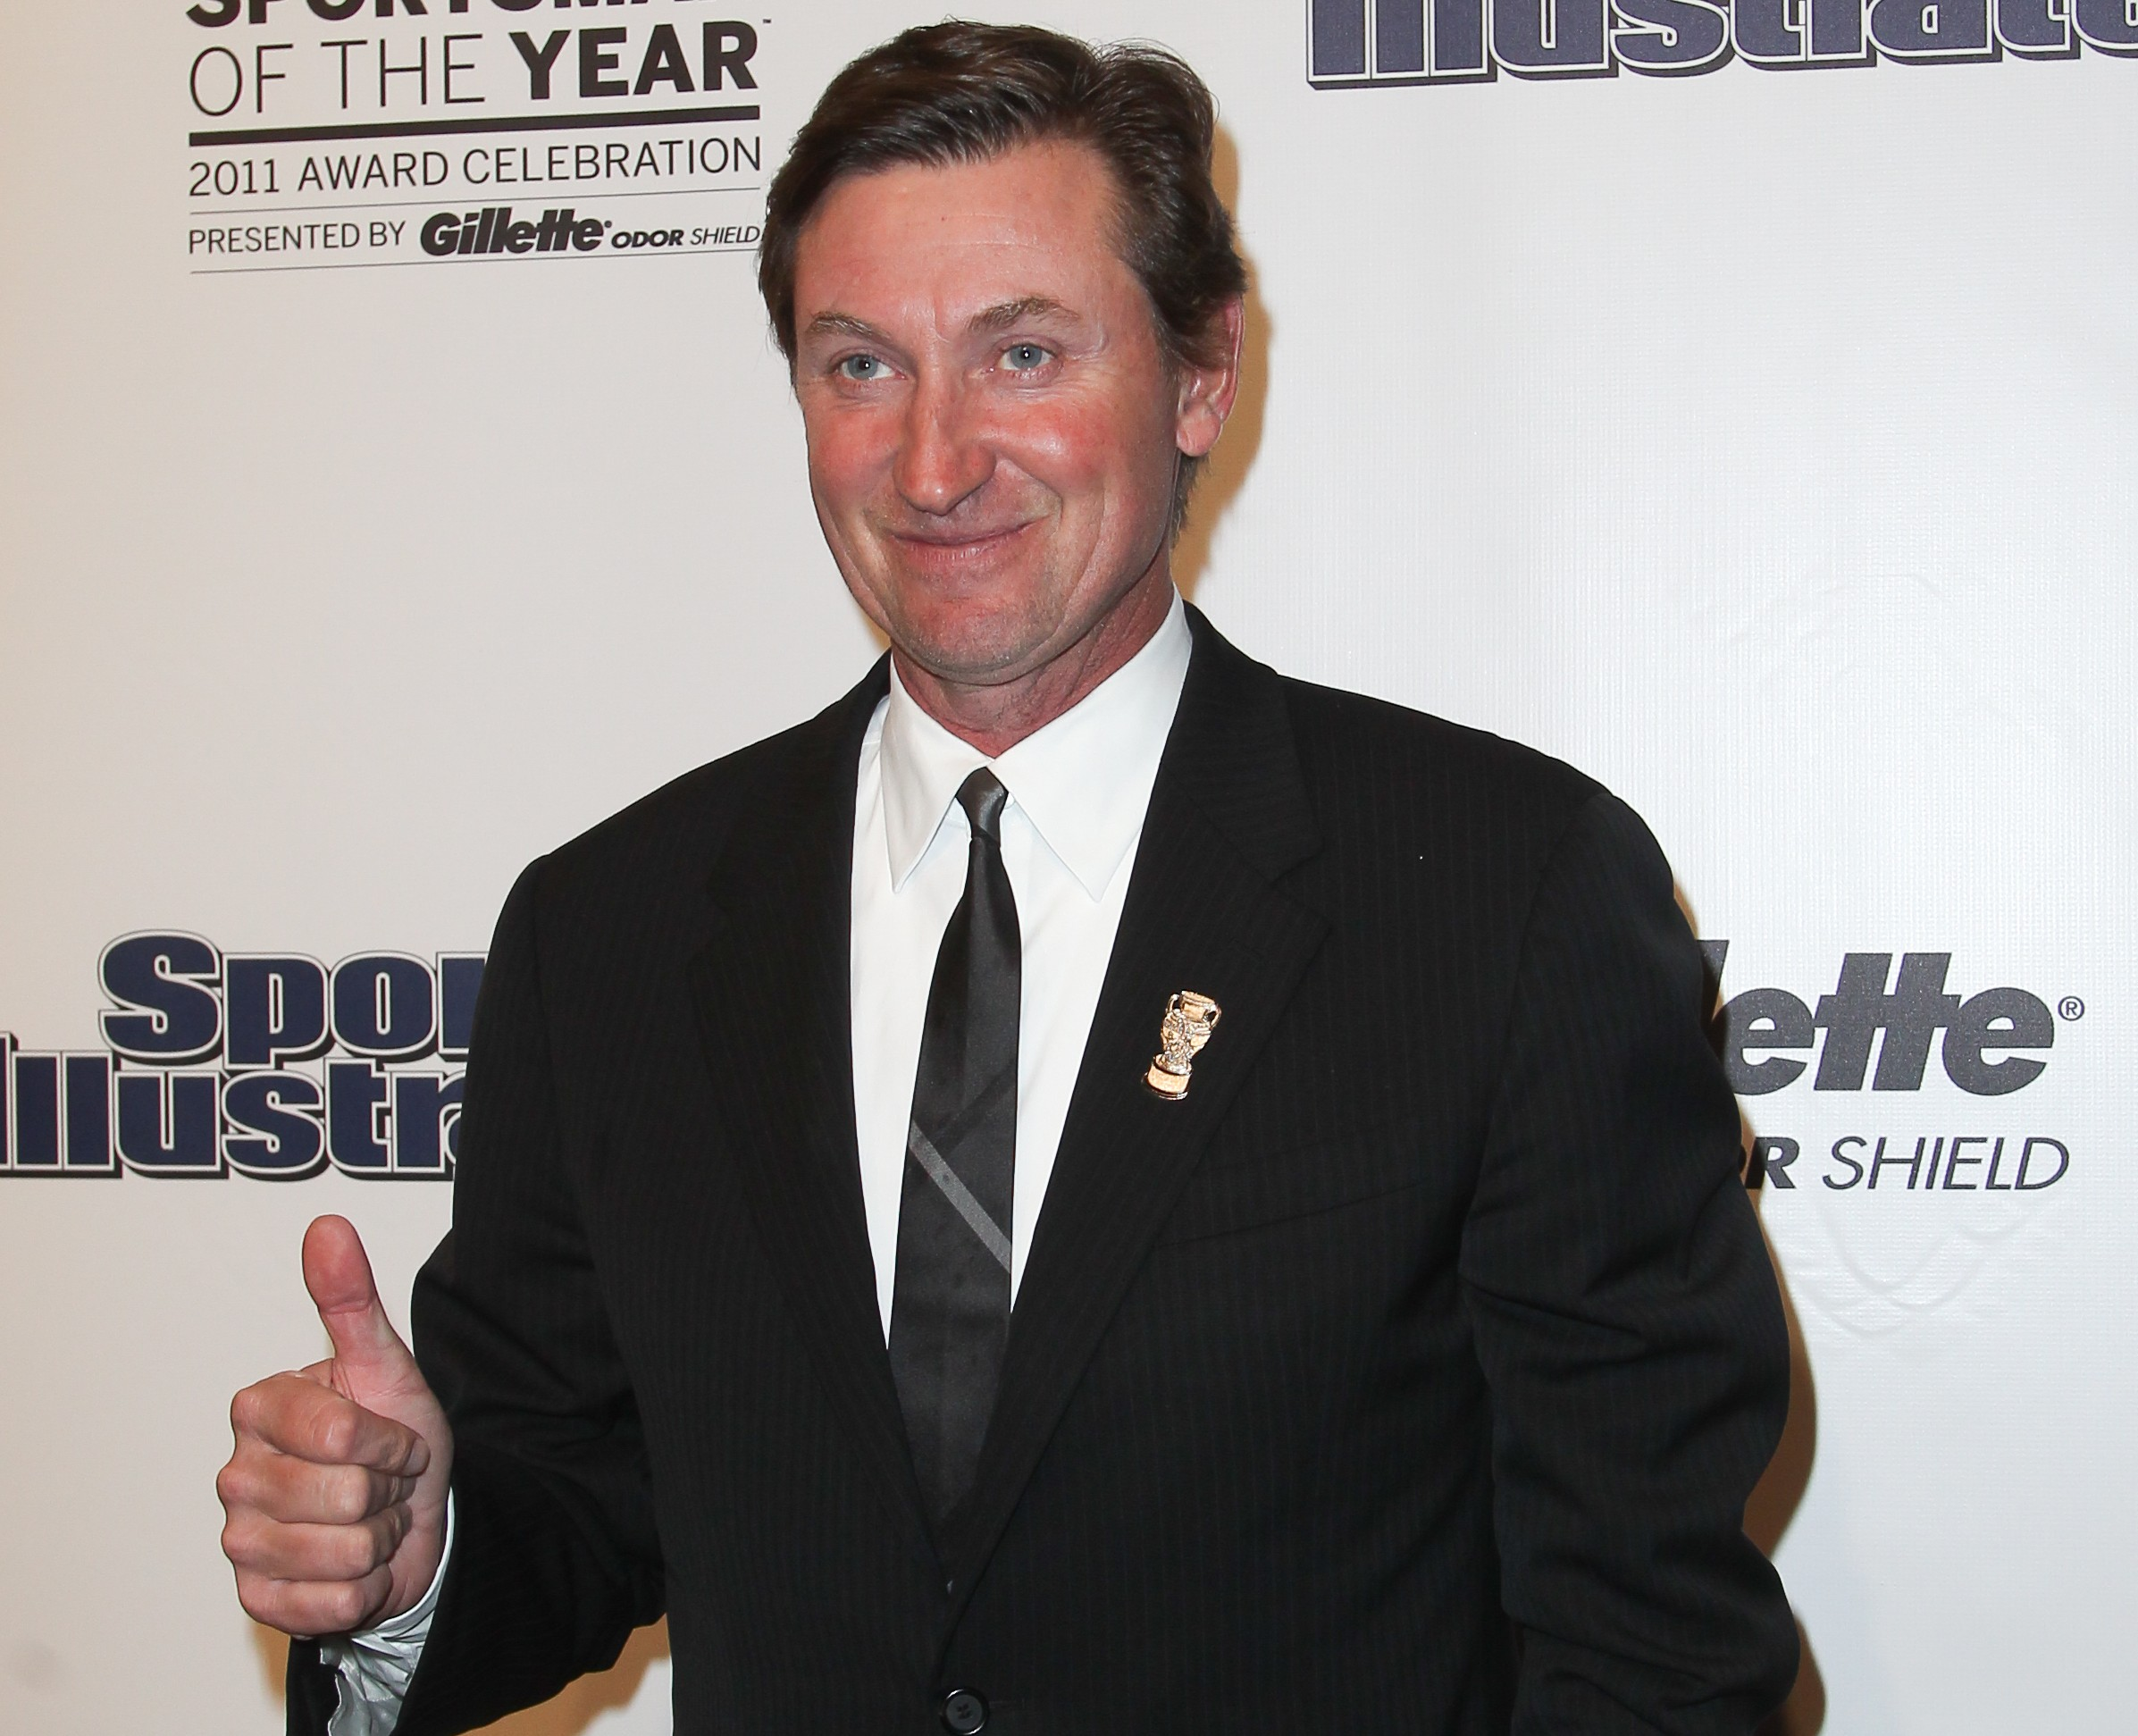 Wayne Gretzky attends the 2011 Sports Illustrated Sportsman of the Year award presentation at The IAC Building in New York City. Debby Wong / Shutterstock